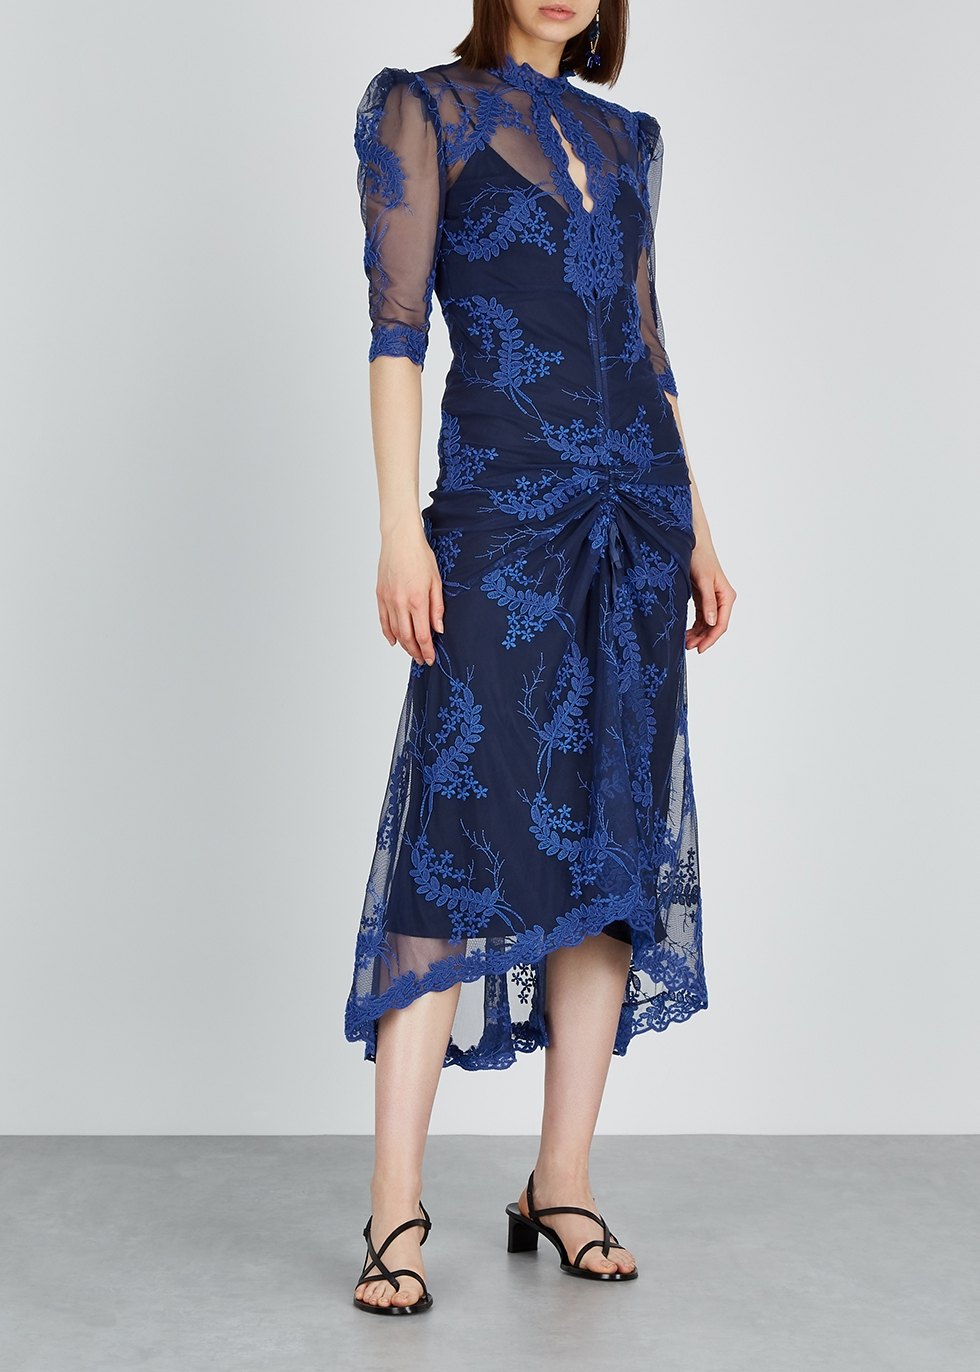 Honeymoon floral-embroidered midi dress - alice McCALL